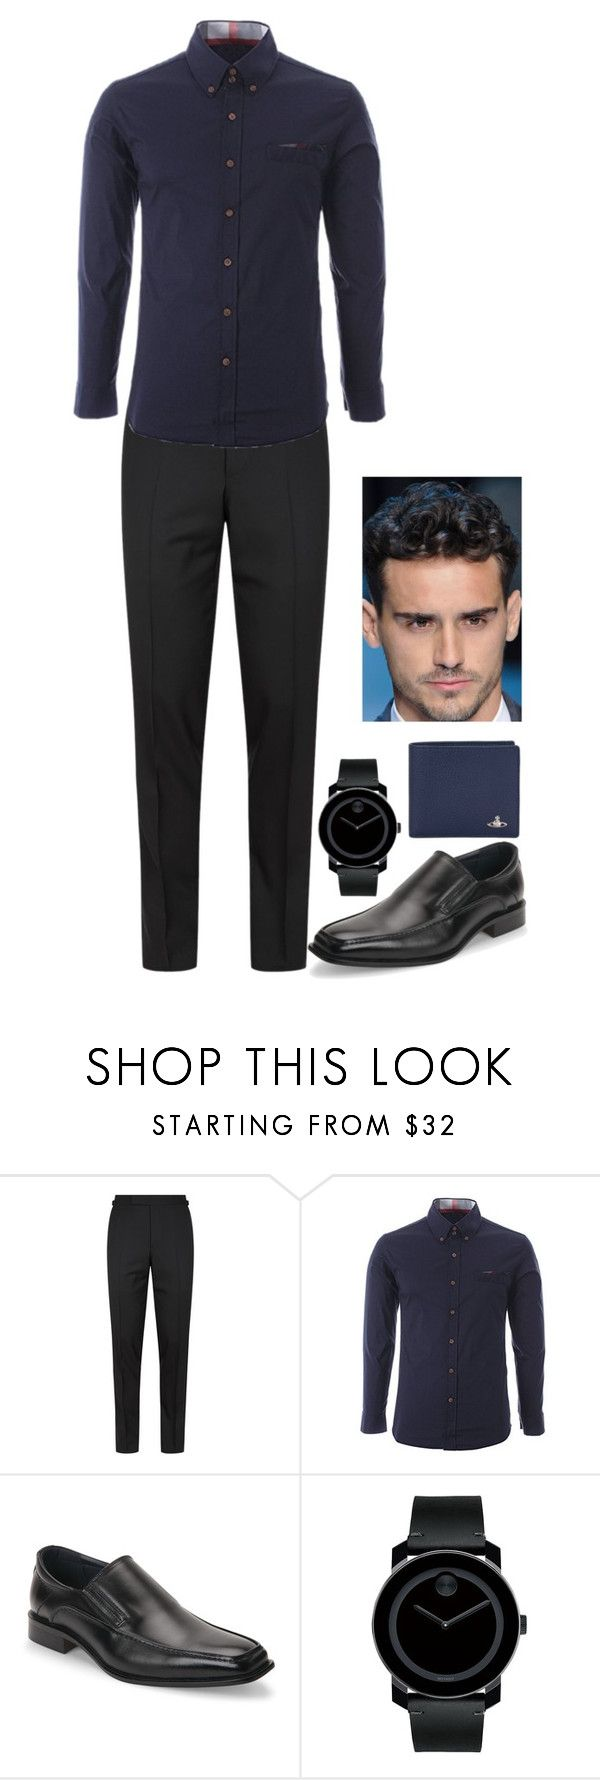 """""""N/A # 1832"""" by wendy00 ❤ liked on Polyvore featuring Tom Ford, Joseph Abboud, Movado, Vivienne Westwood, men's fashion and menswear"""